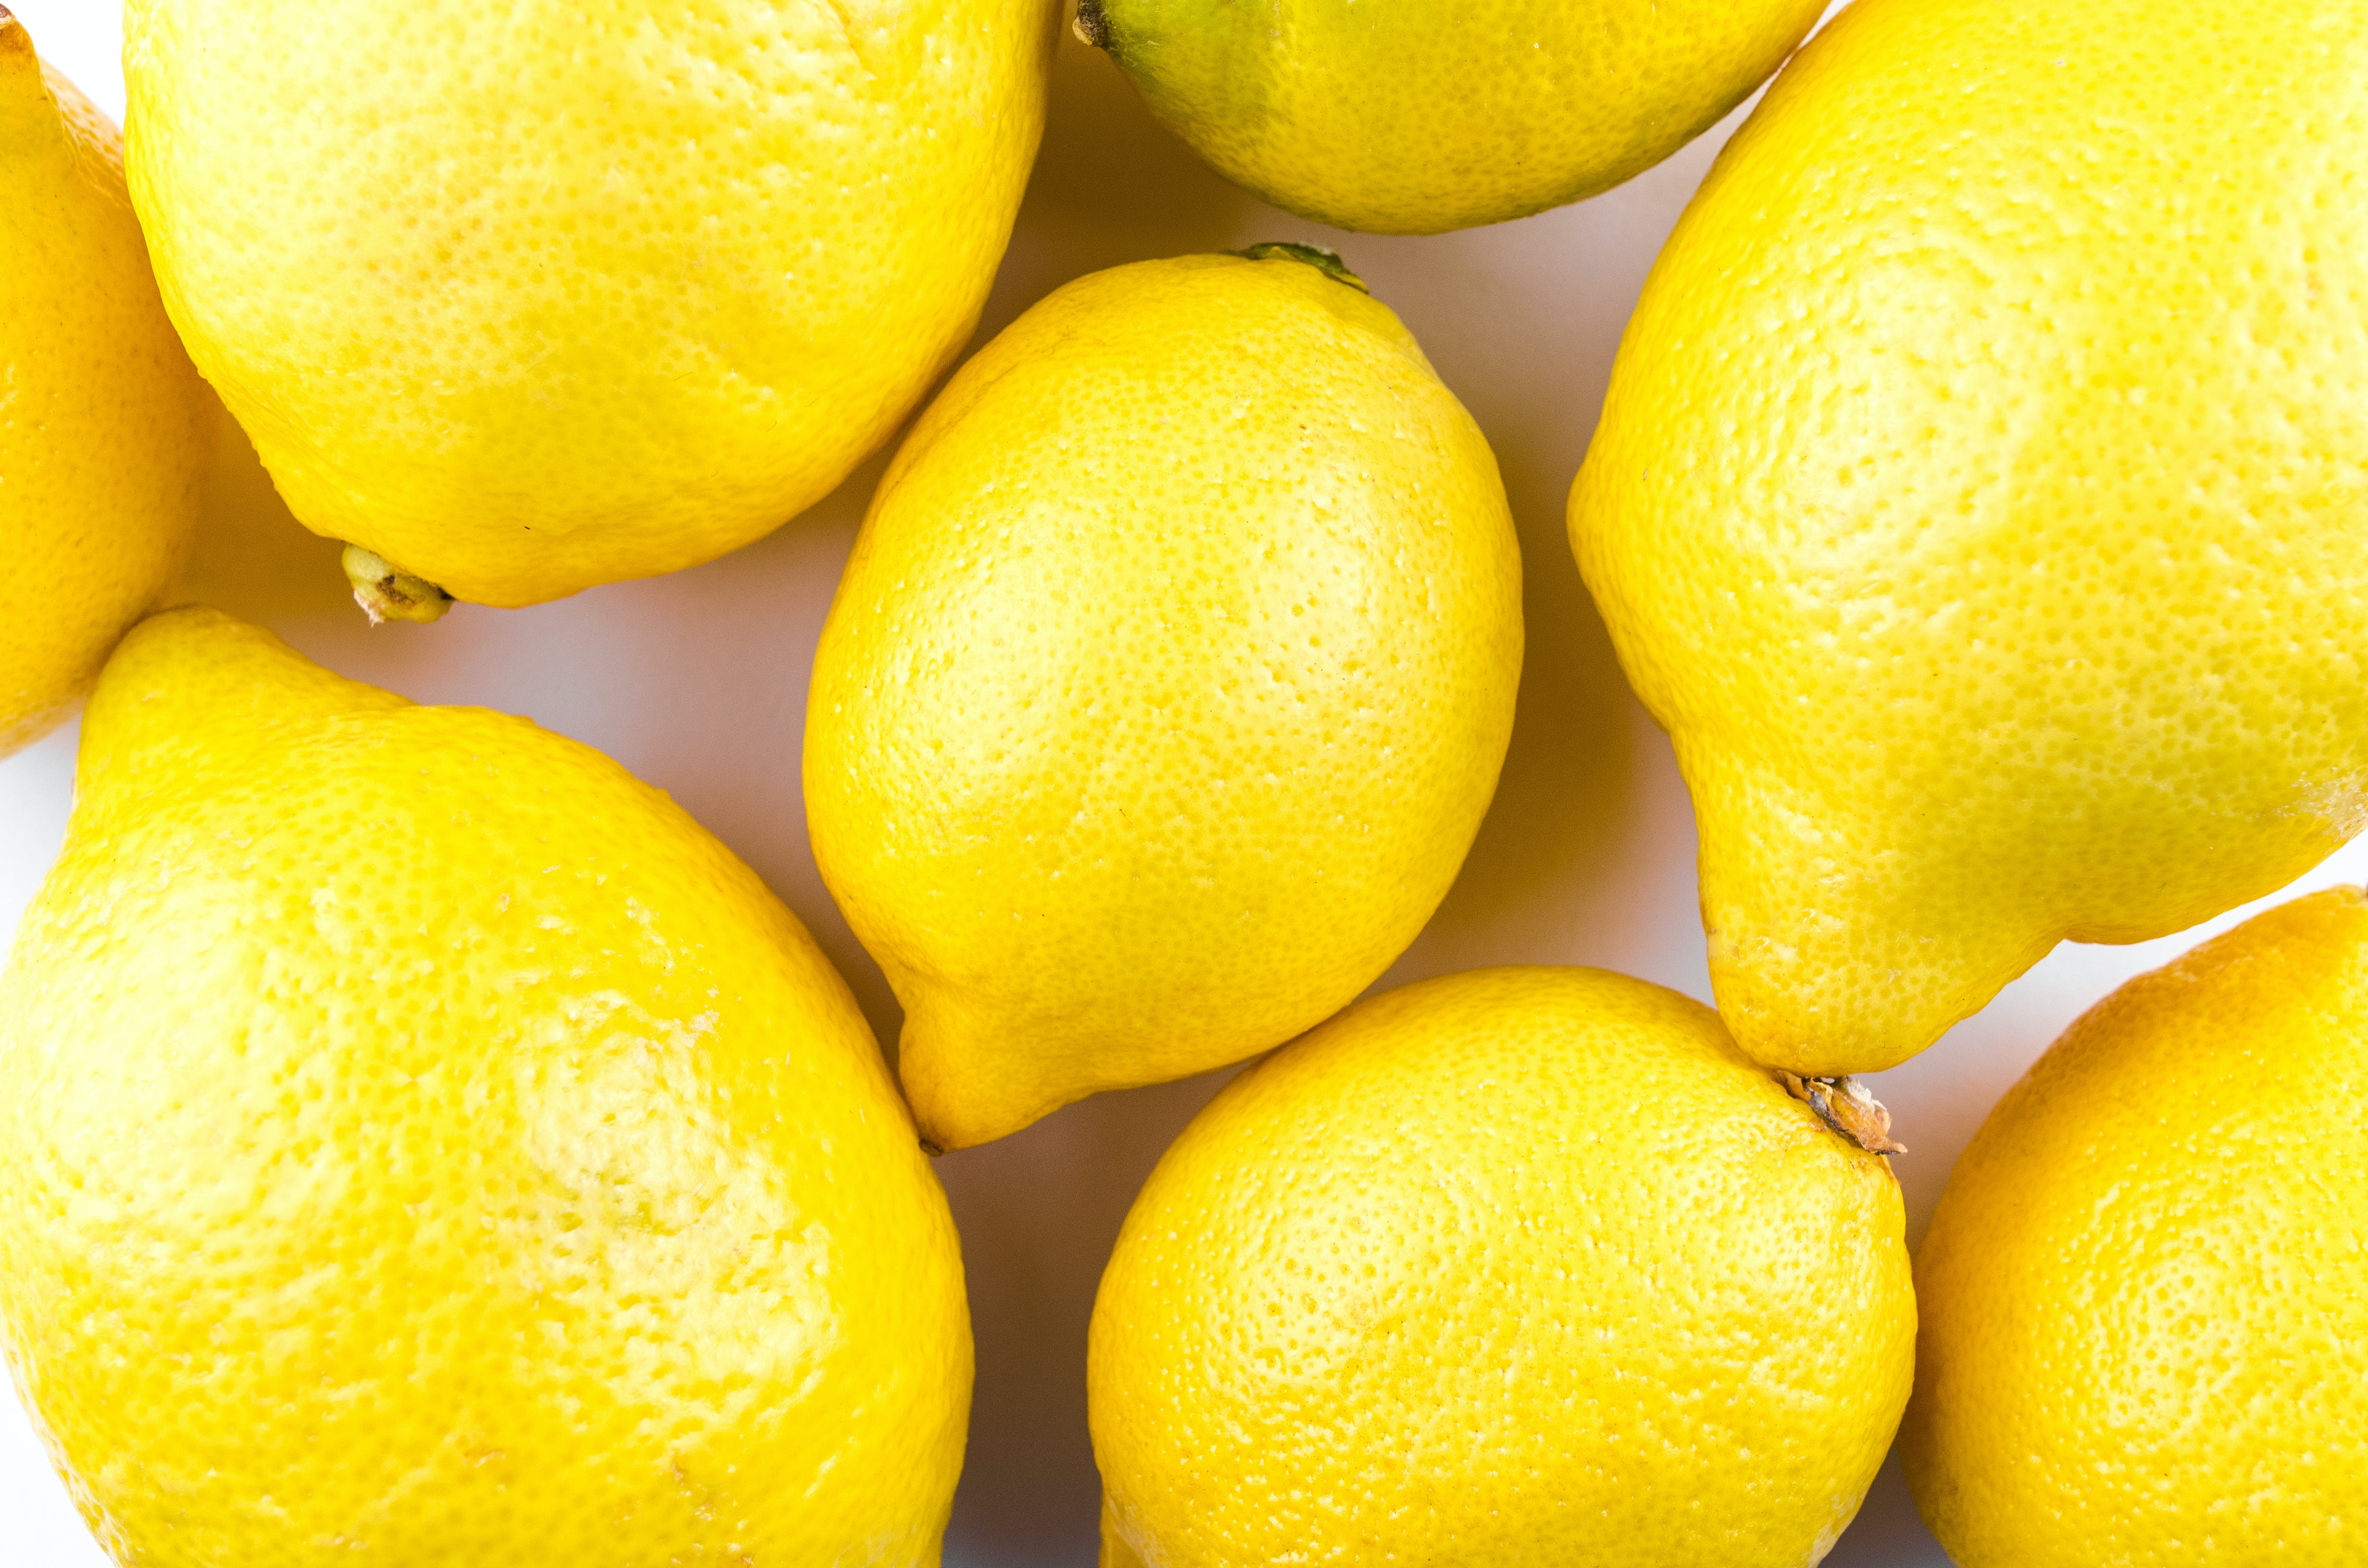 Close-Up Photography of Lemons